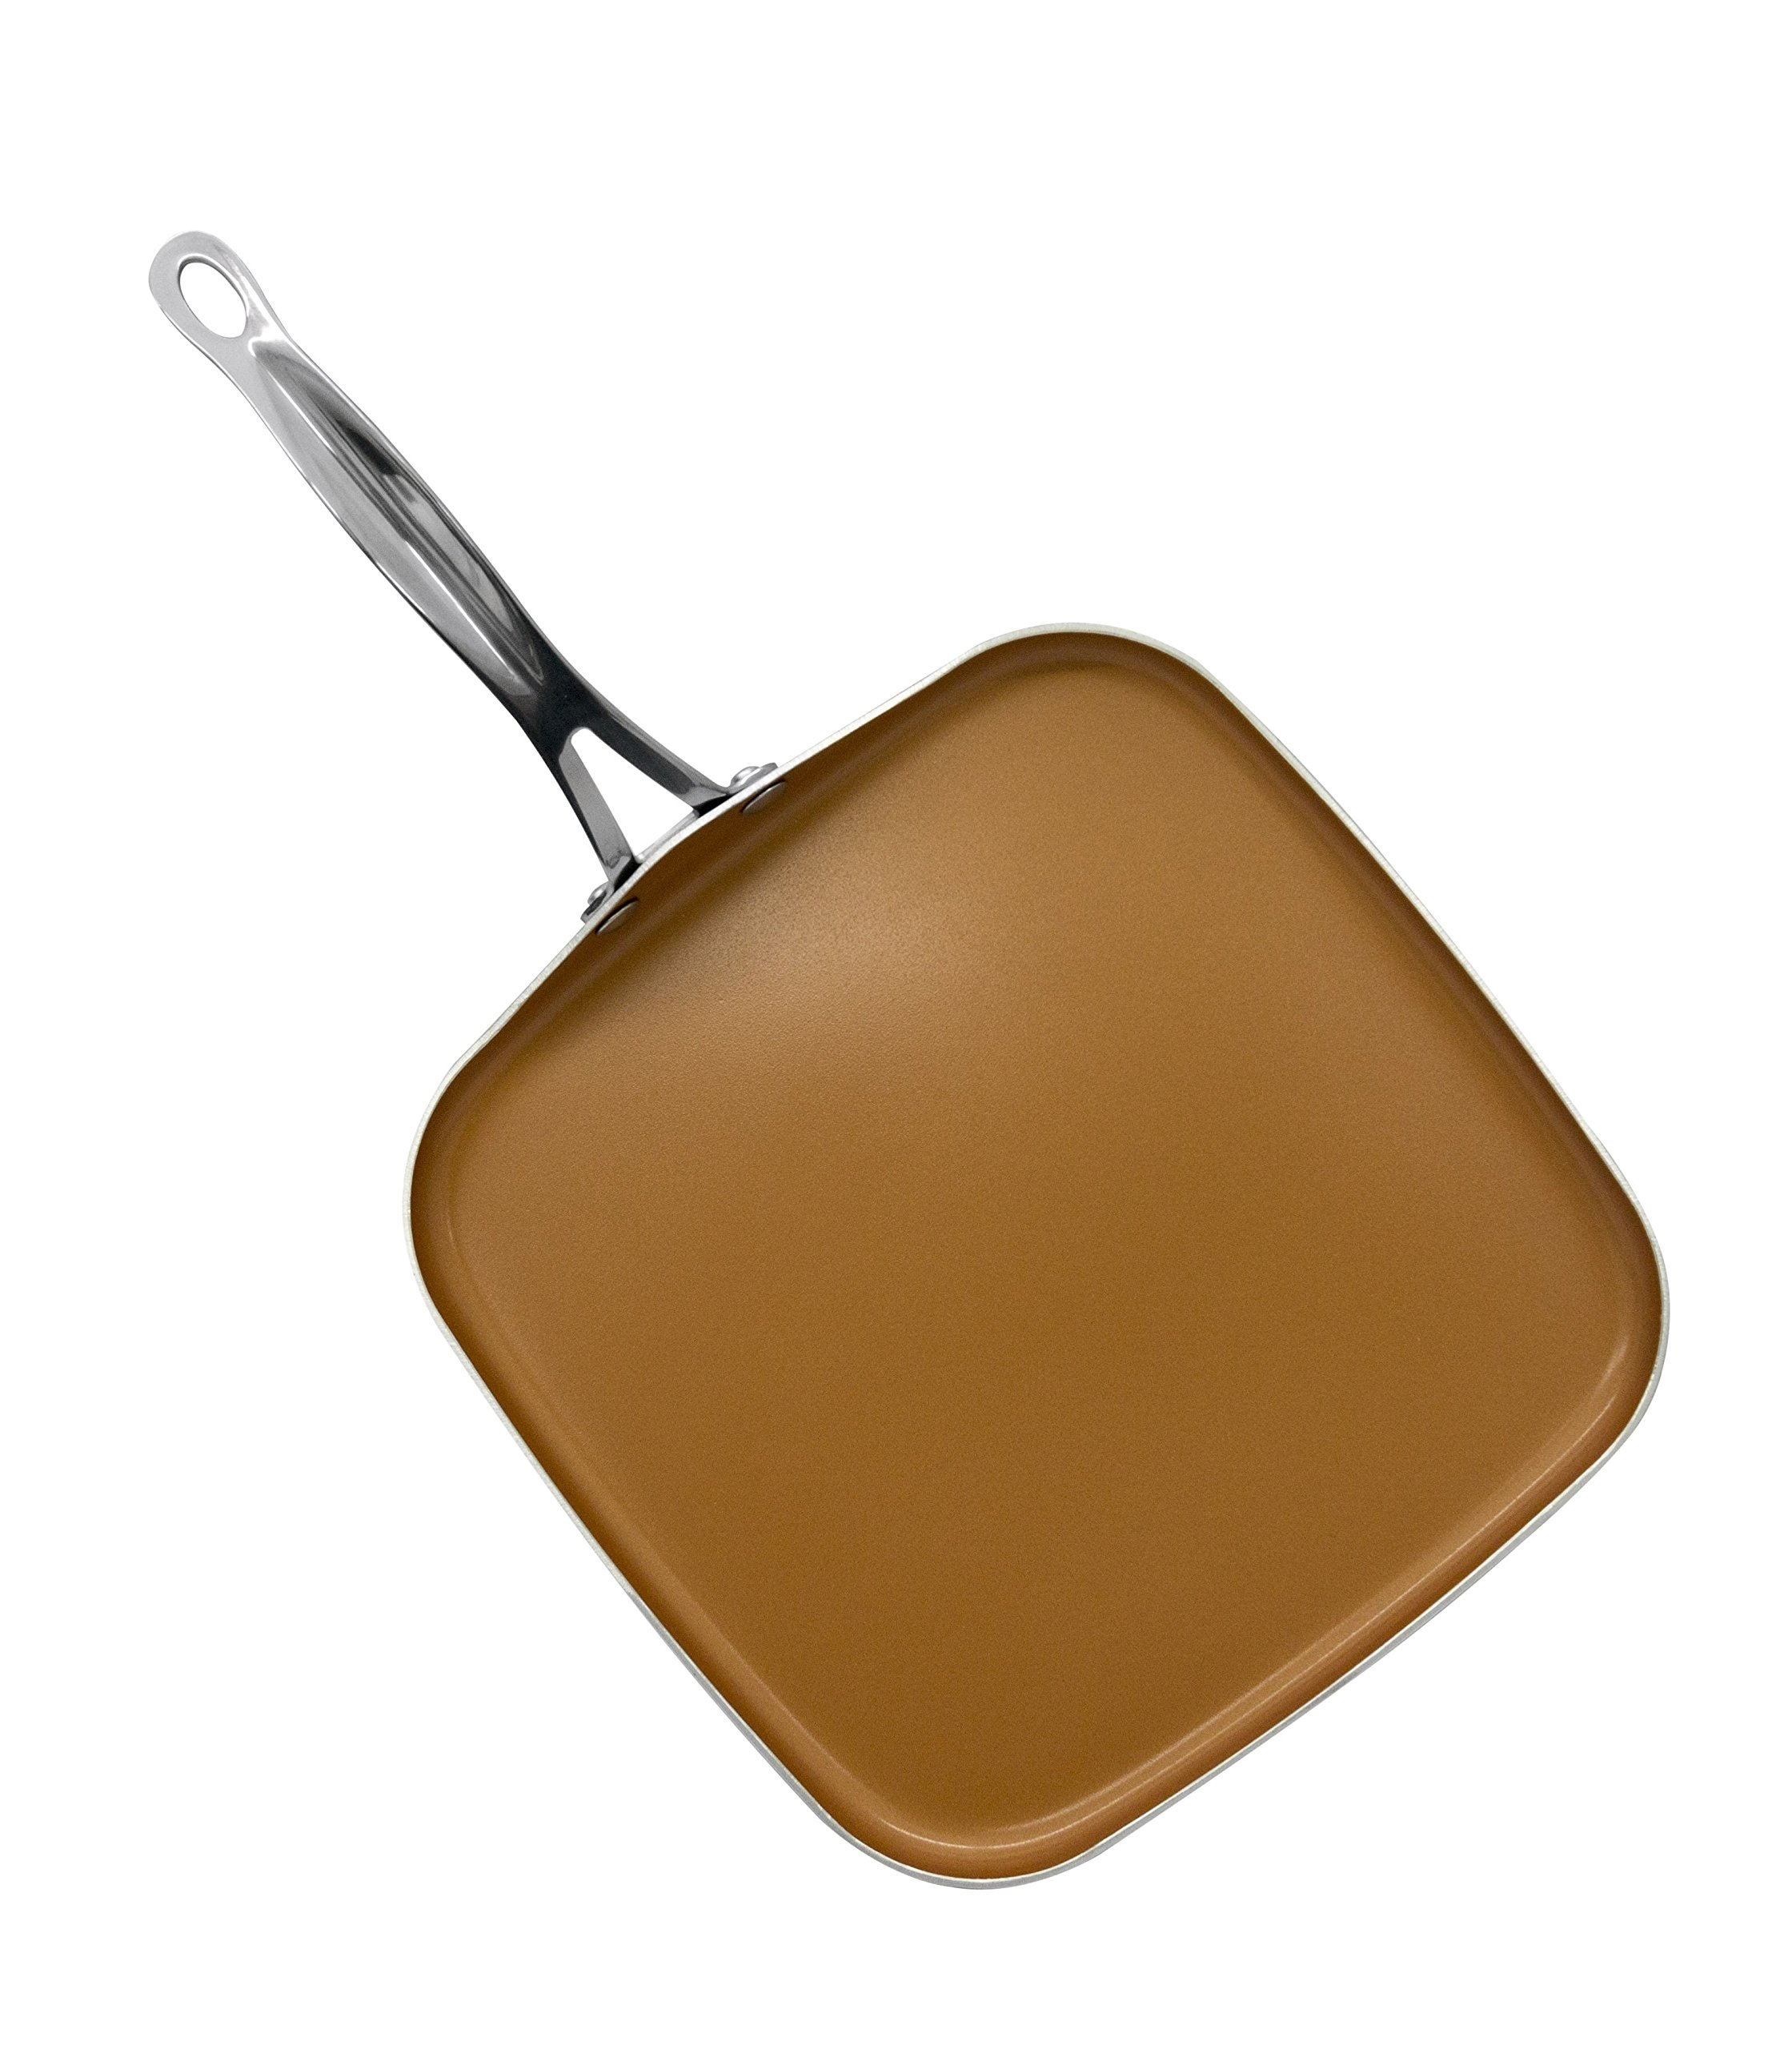 Gotham Steel Copper Non-Stick 10.5'' Square Griddle Pan– Perfect for Omelets, Pancakes and more. Nonstick Copper, Dishwasher Safe with Stainless Handle